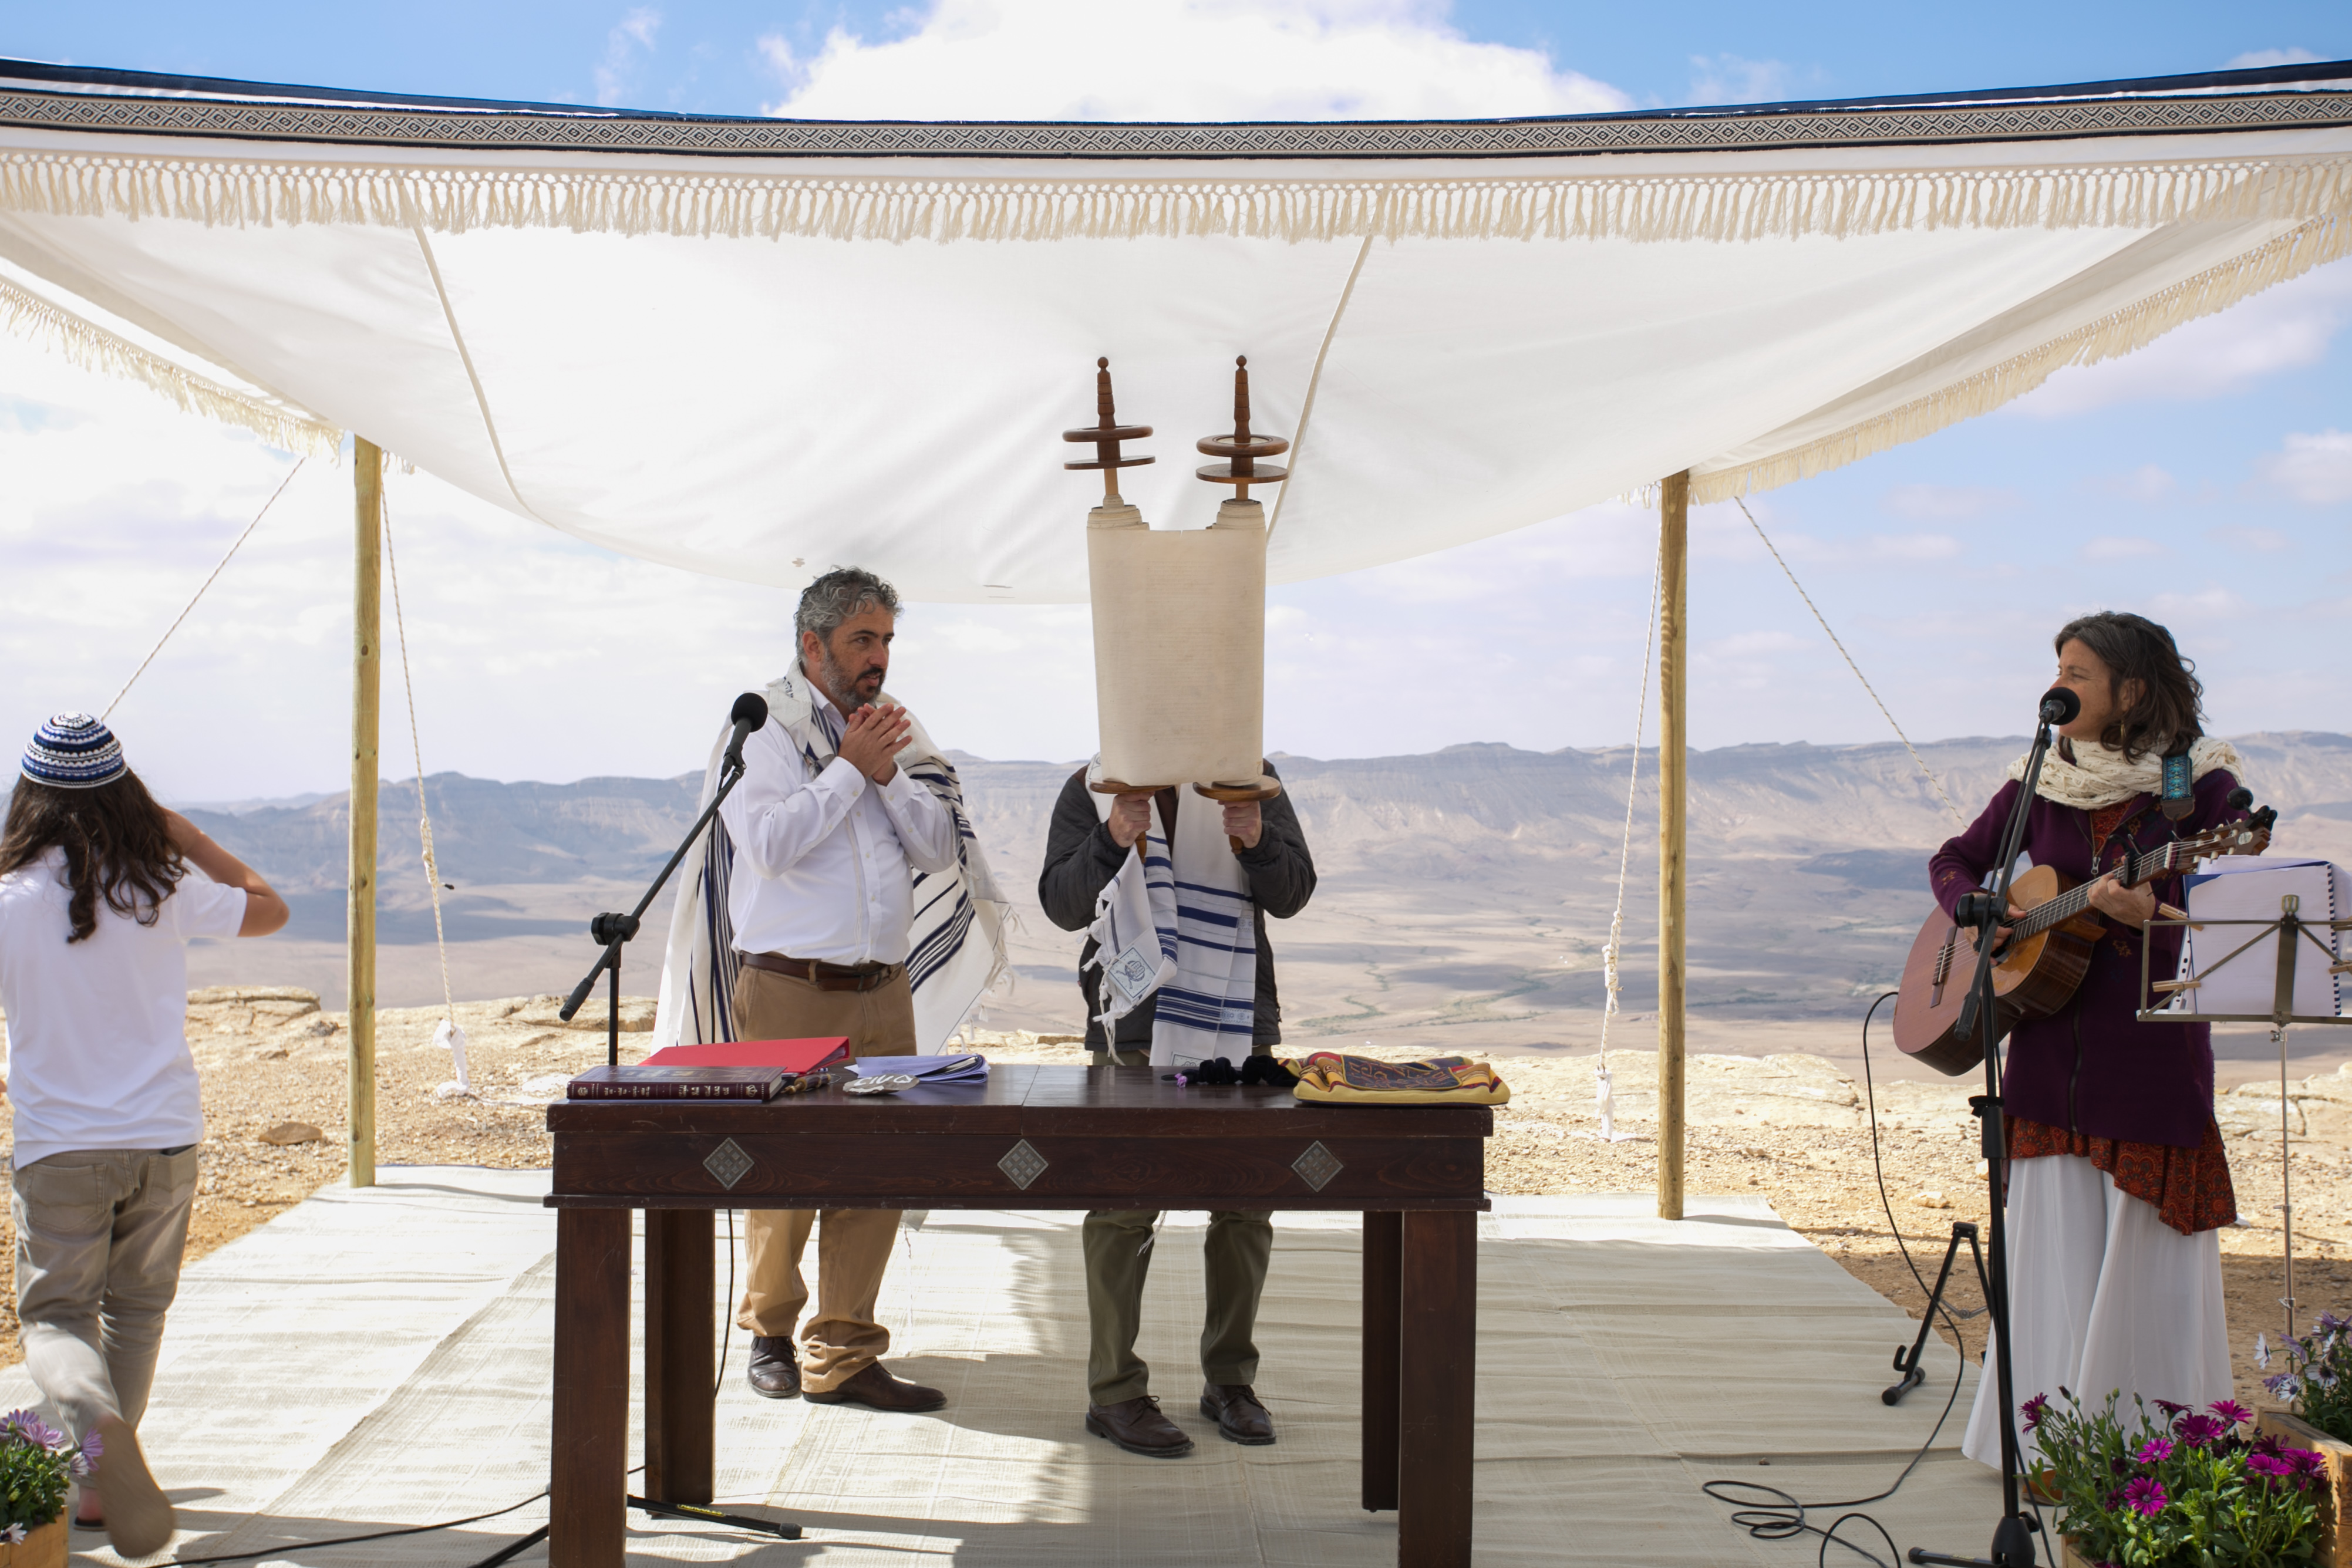 Bar-Mitzvah in the Israeli desert